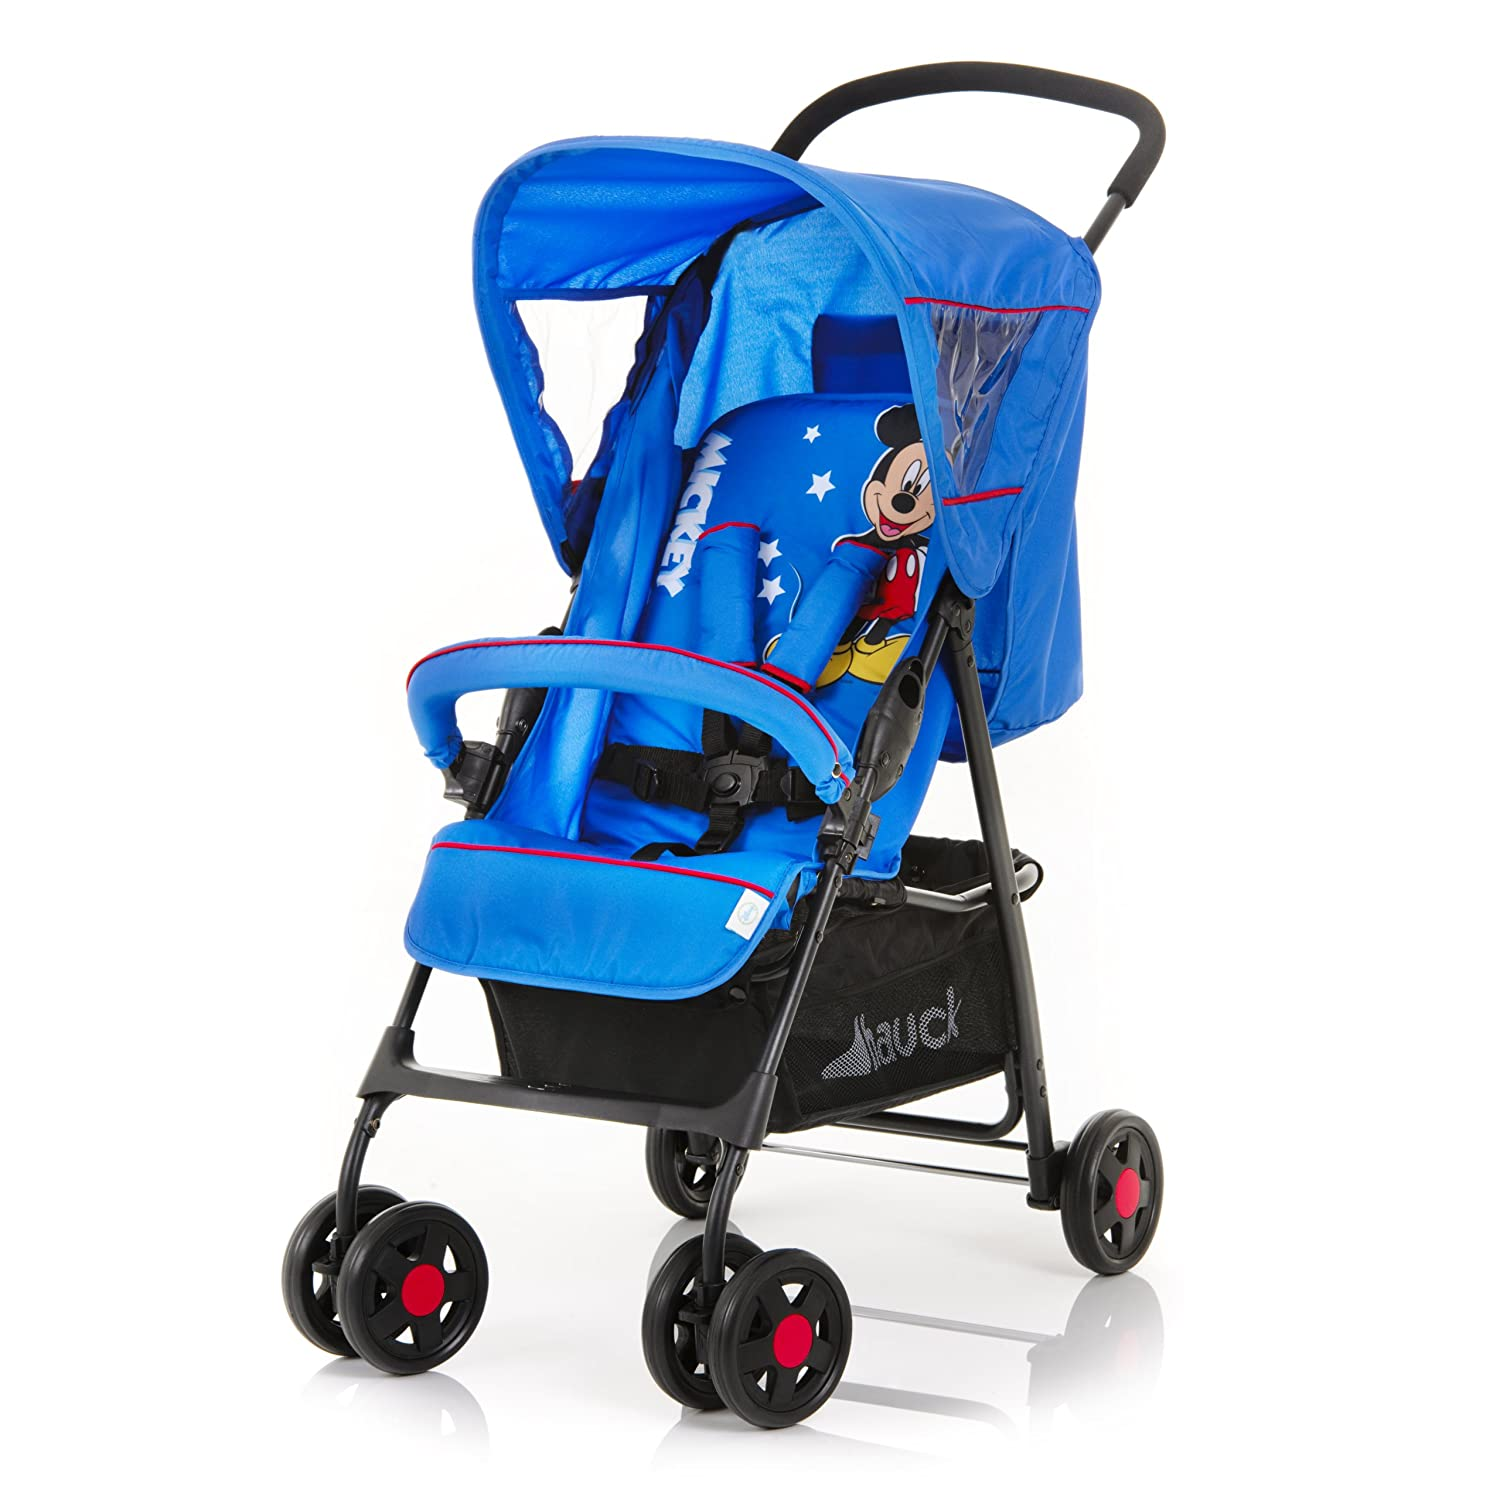 Tu chollo aqui chollo carrito para bebe hauck 171035 for Sillas de paseo baratas